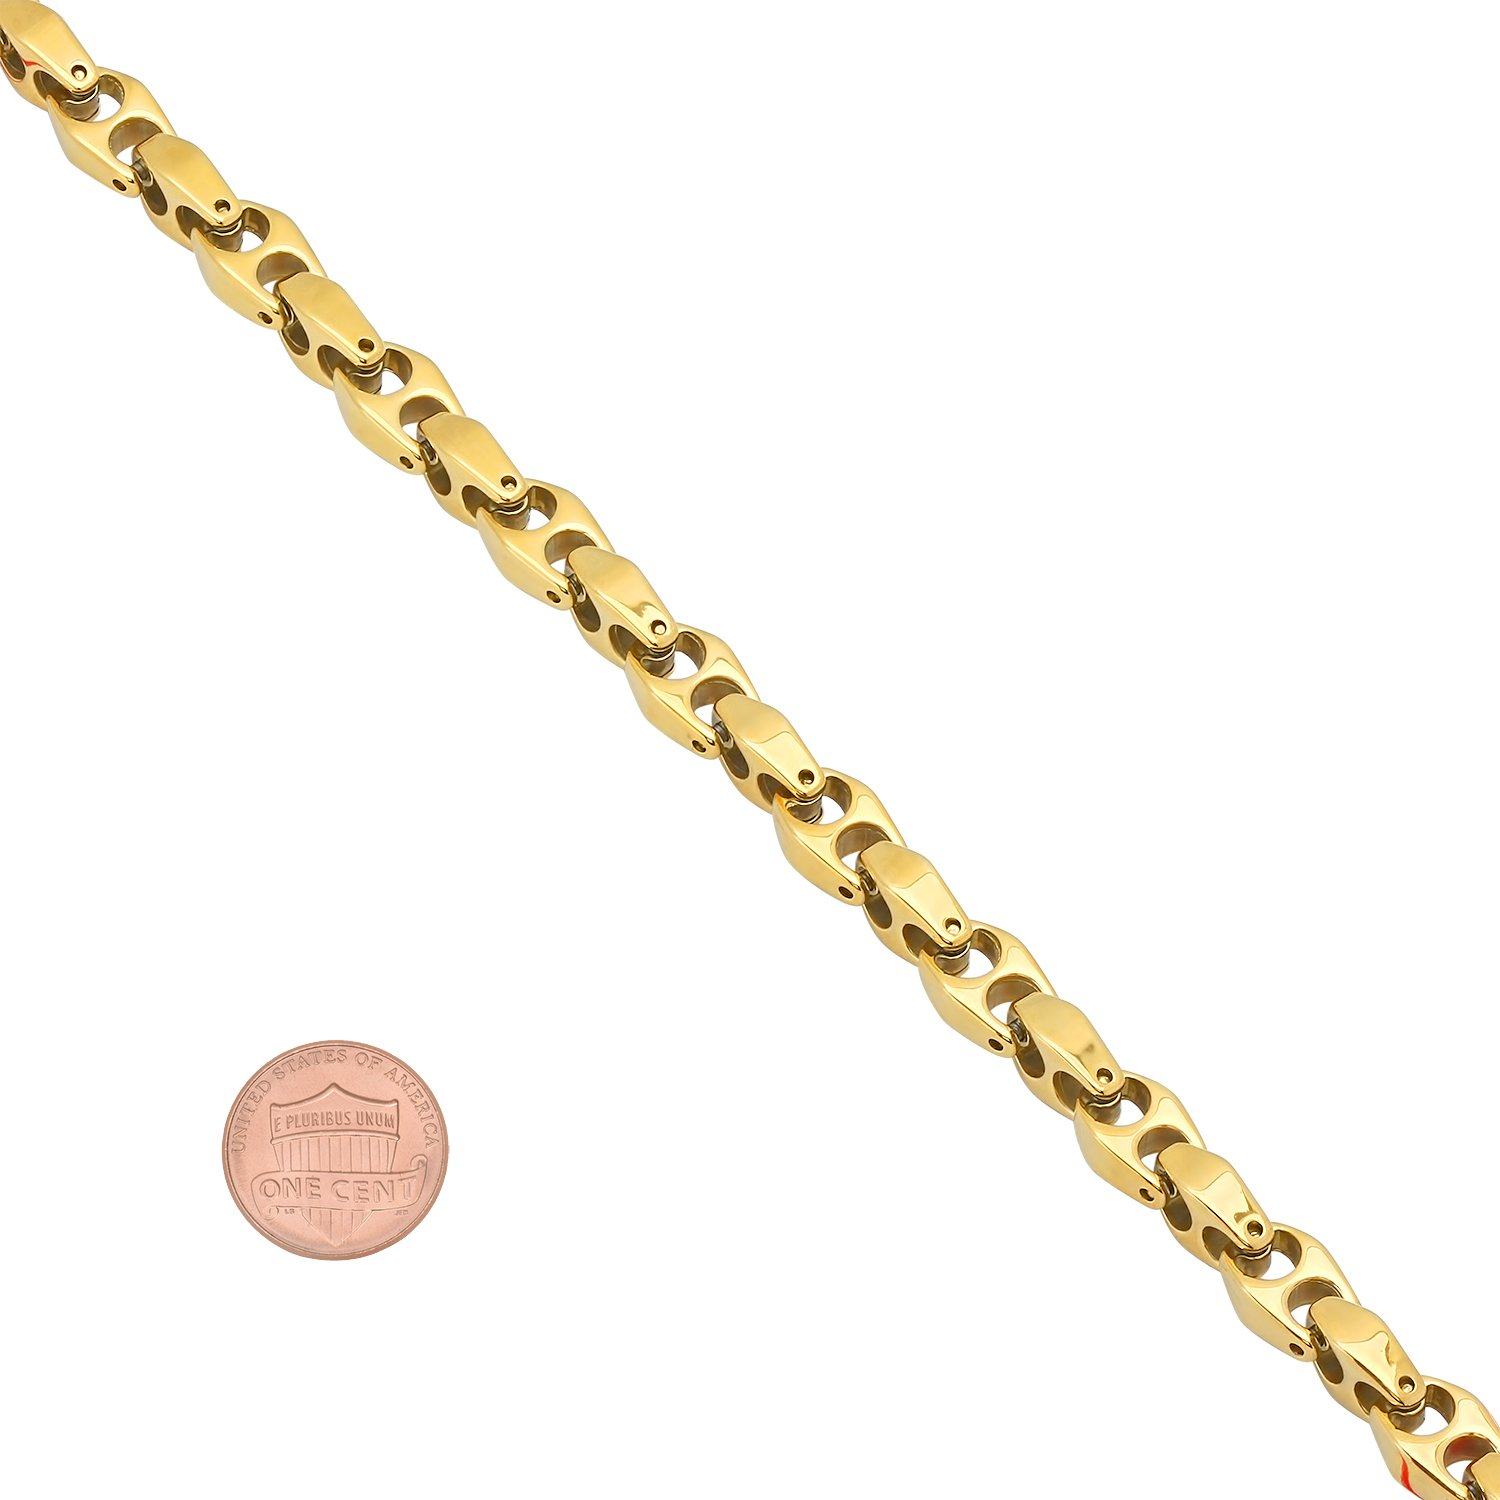 The Bling Factory 14k Gold Plated Durable Tungsten 6mm Puffed Mariner Link Chain Necklace Jewelry Polishing Cloth